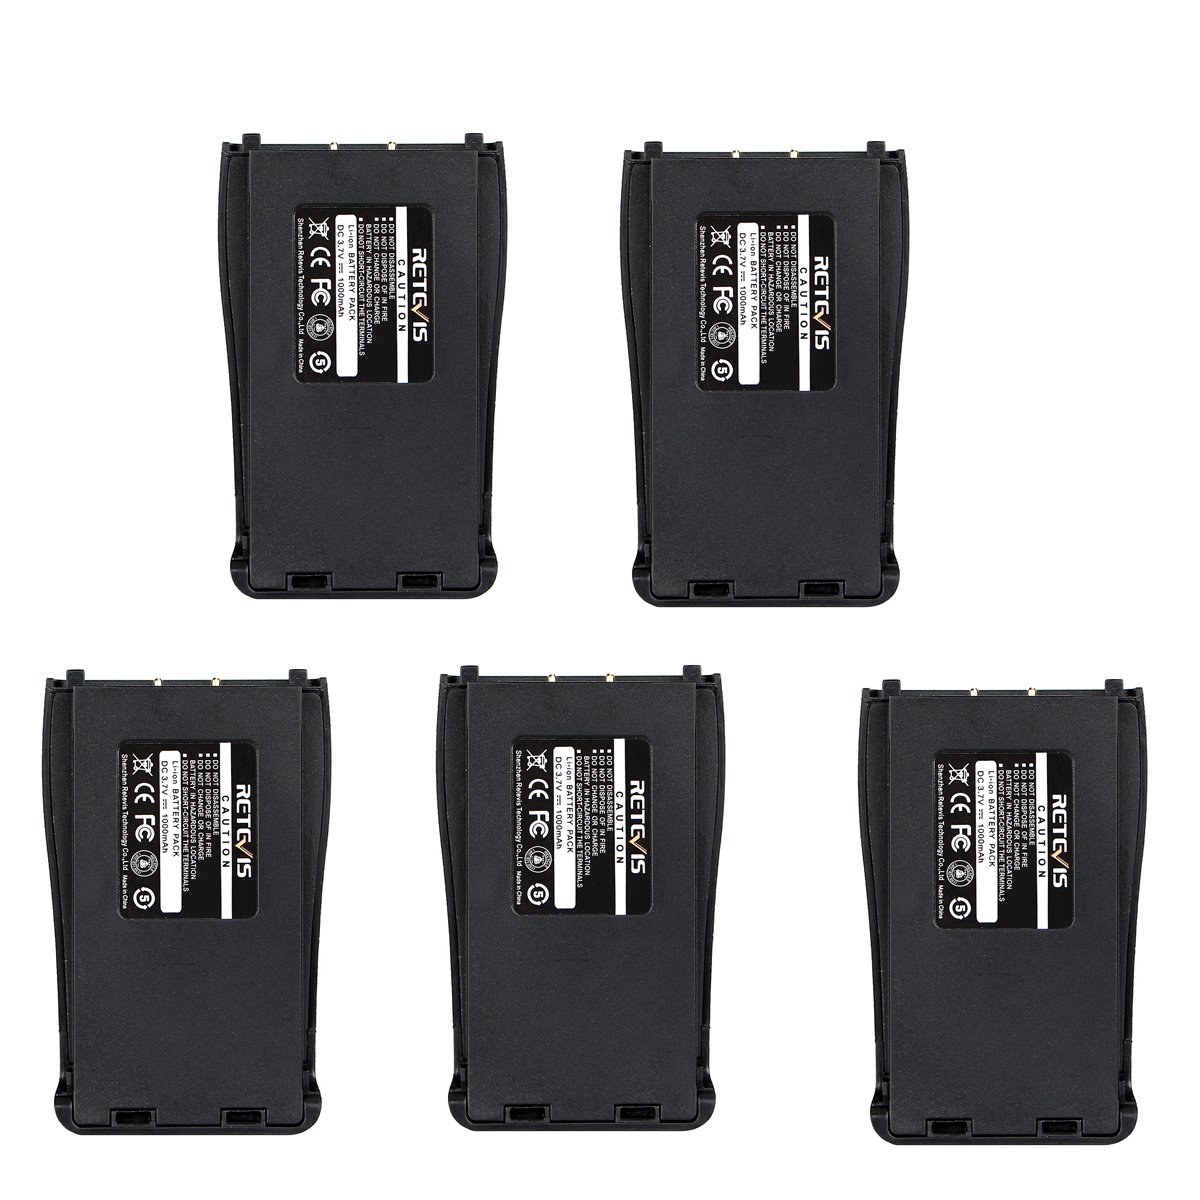 Retevis Two Way Radio Battery 1000mAh Original Replacement Battery for Retevis H-777 Baofeng BF-888S Arcshell AR-5 Walkie Talkie (5 Pack)